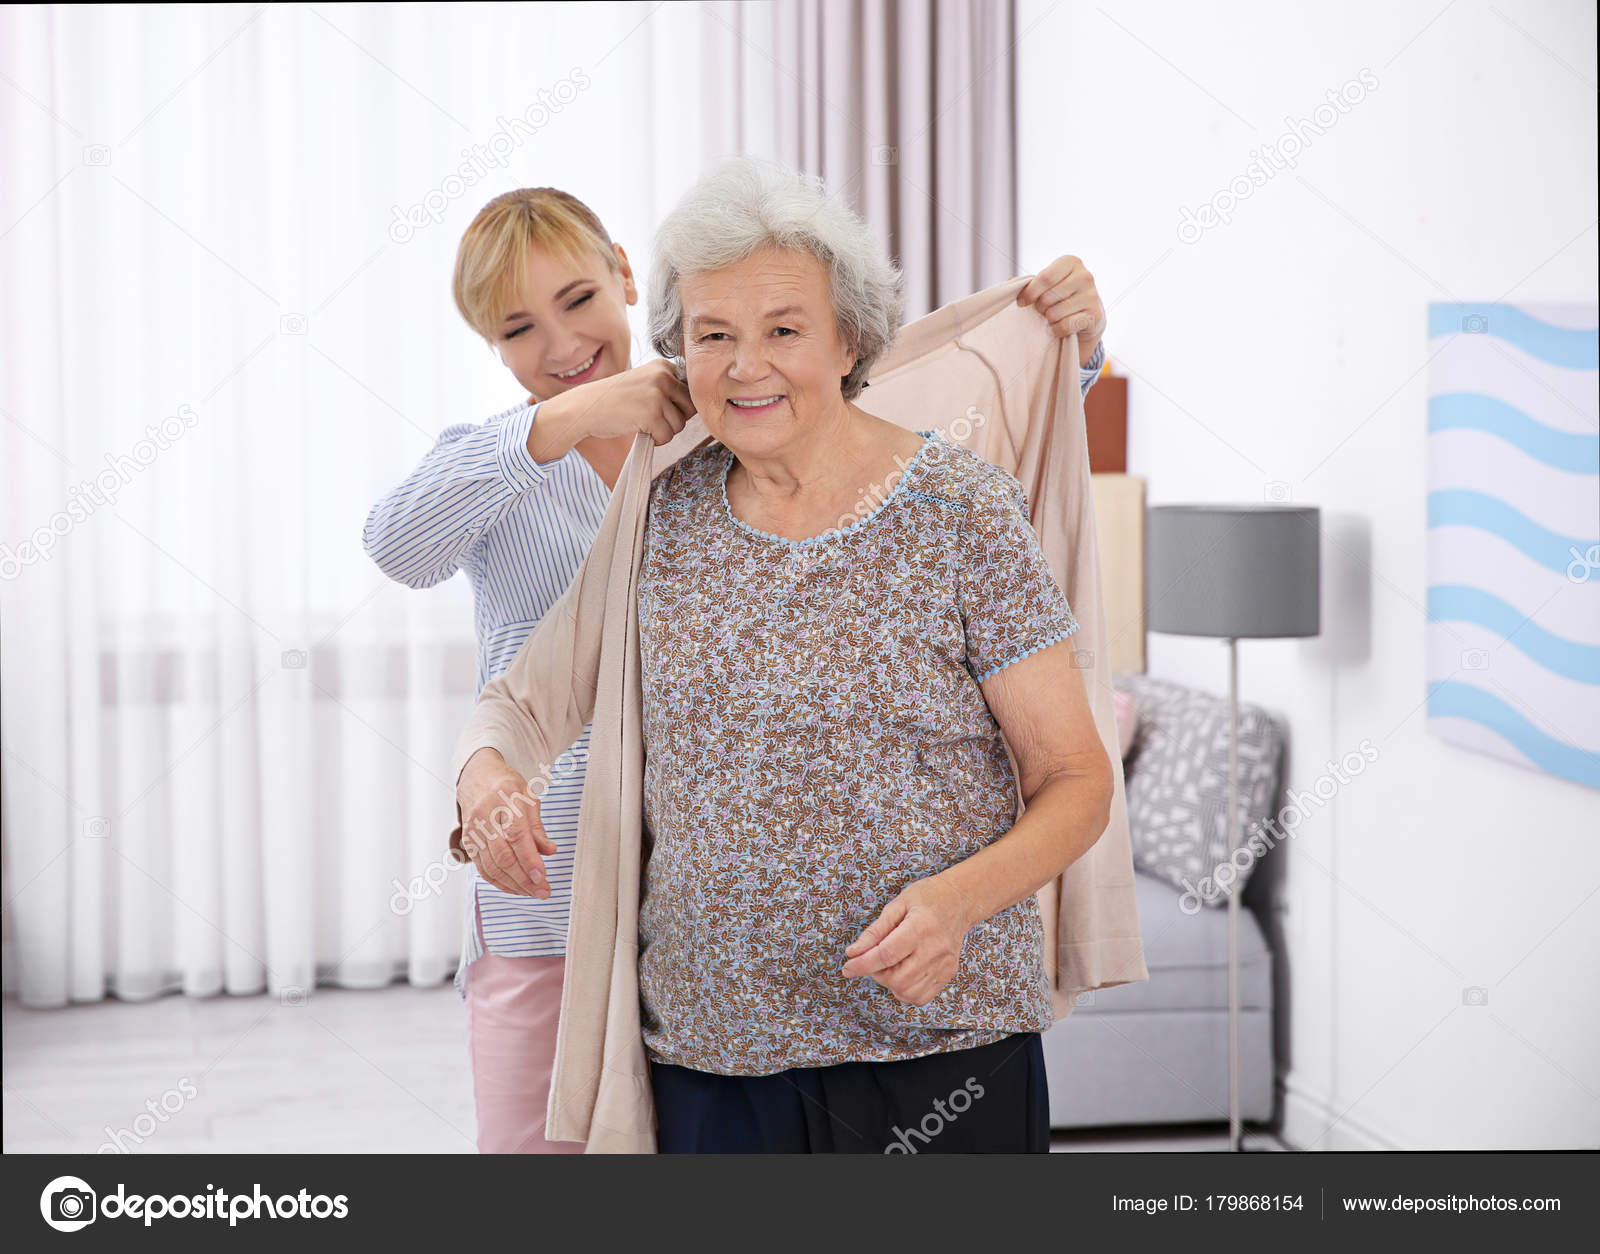 Depression In The Elderly - A Caregiver Helping An Elderly Woman Dress